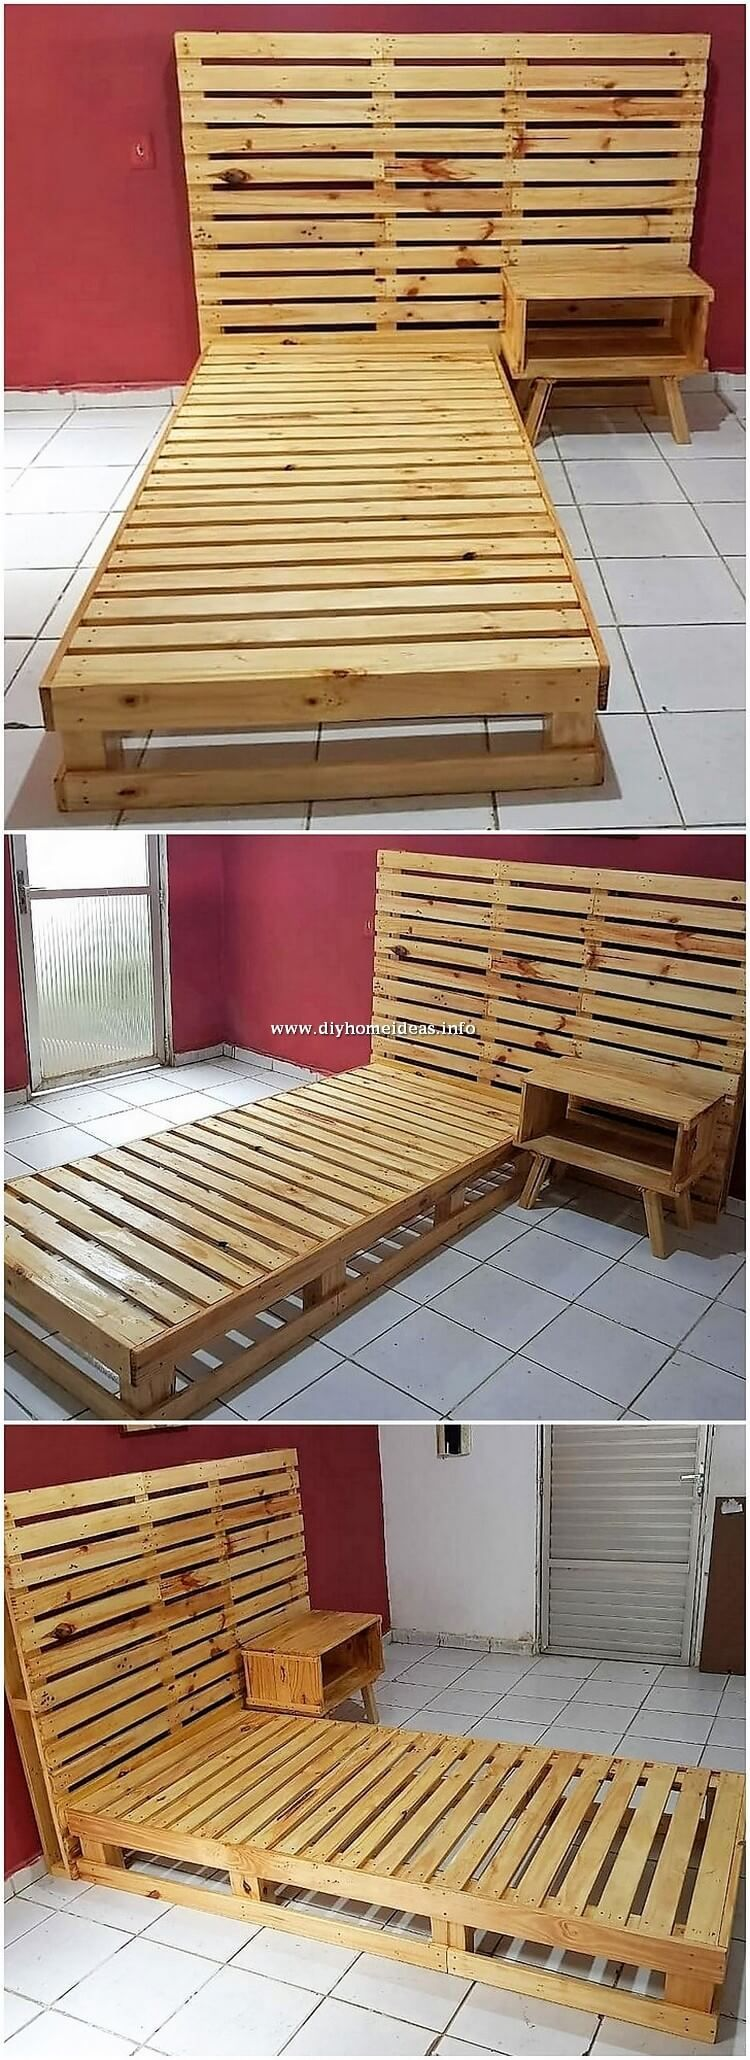 Photo of Pretty Pallet Wood Projects You Can Make! – DIY Home Ideas